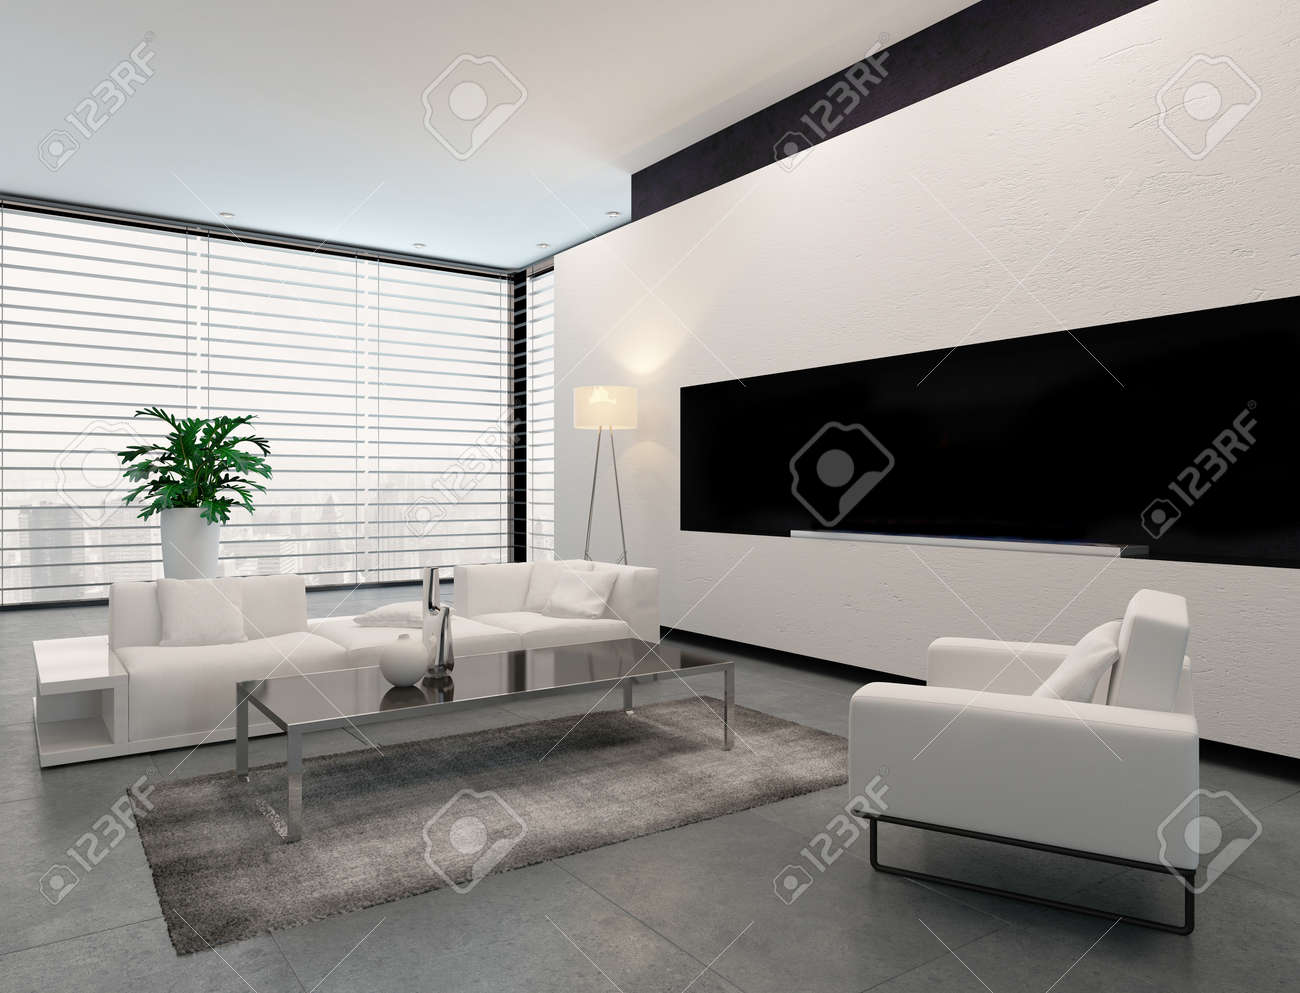 Modern living room interior in white grey and black in minimalist style with closed blinds